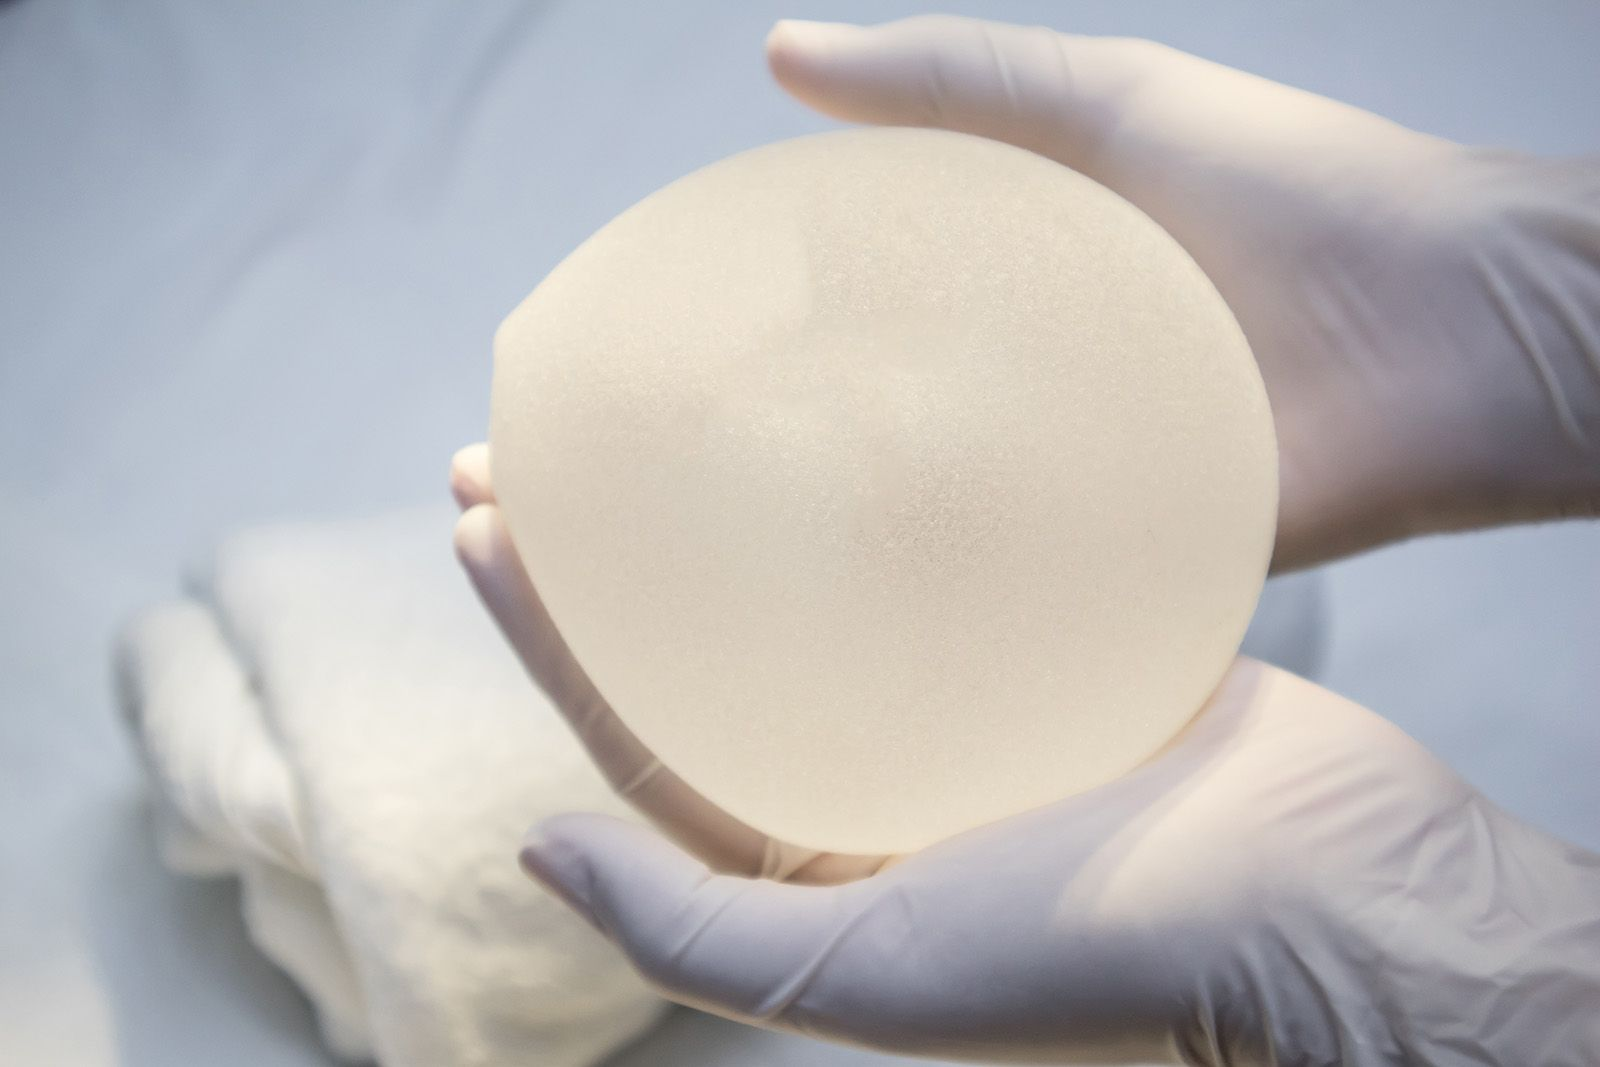 Surgeon holding a breast implant